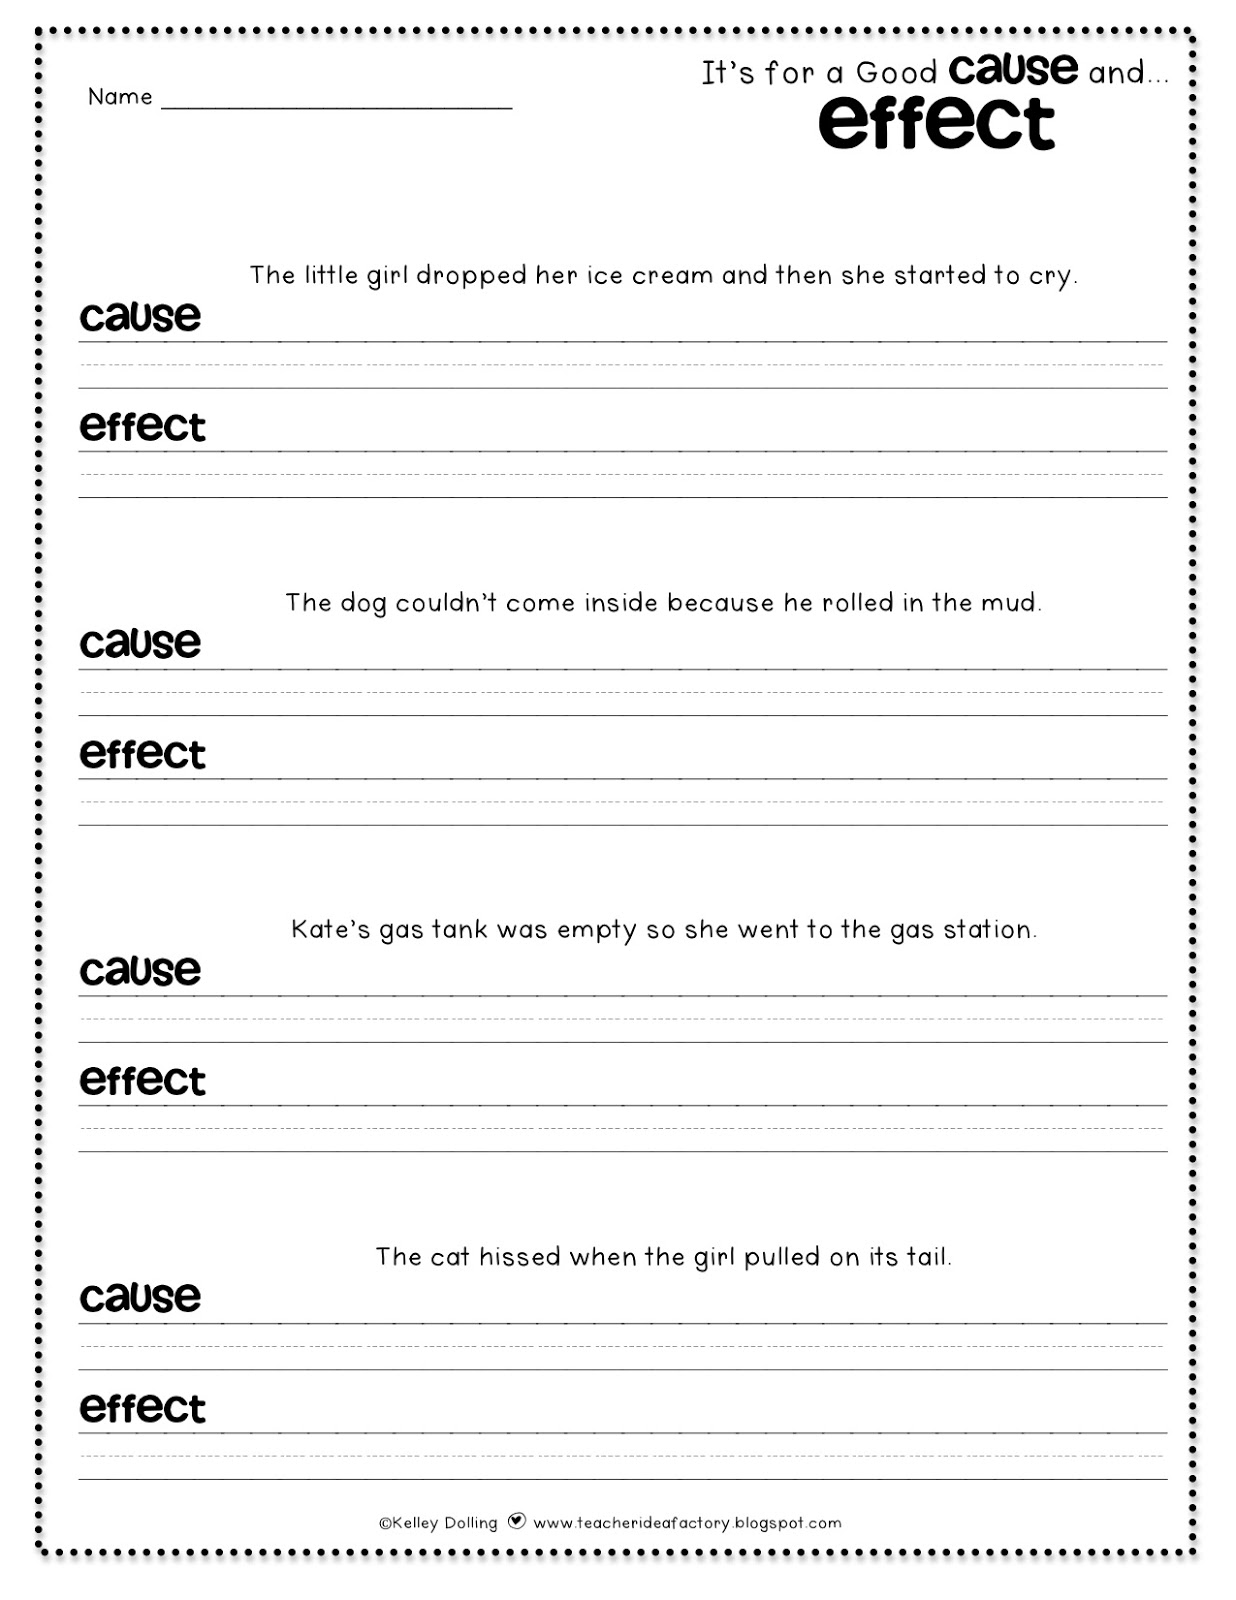 cause and effect essay on stress durdgereport web fc com cause and effect essay on stress